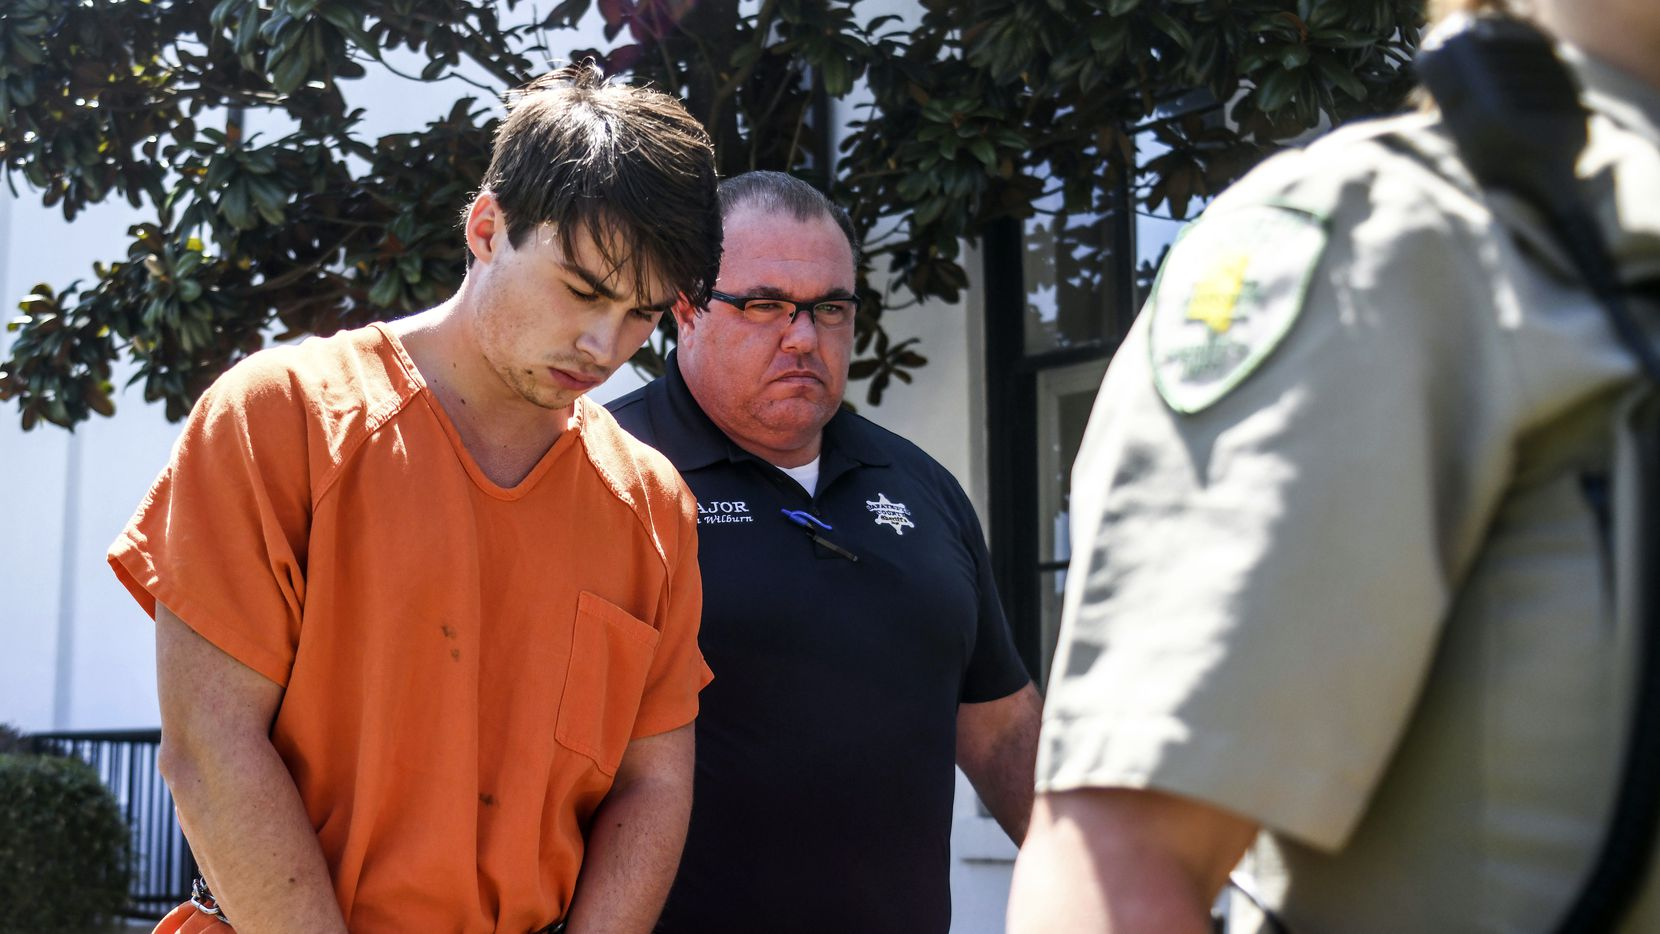 """Brandon Theesfeld is led from the Lafayette County Courthouse in Oxford, Miss., Tuesday after being arraigned in connection with the death of 21-year-old University of Mississippi student Alexandria """"Ally"""" Kostial."""